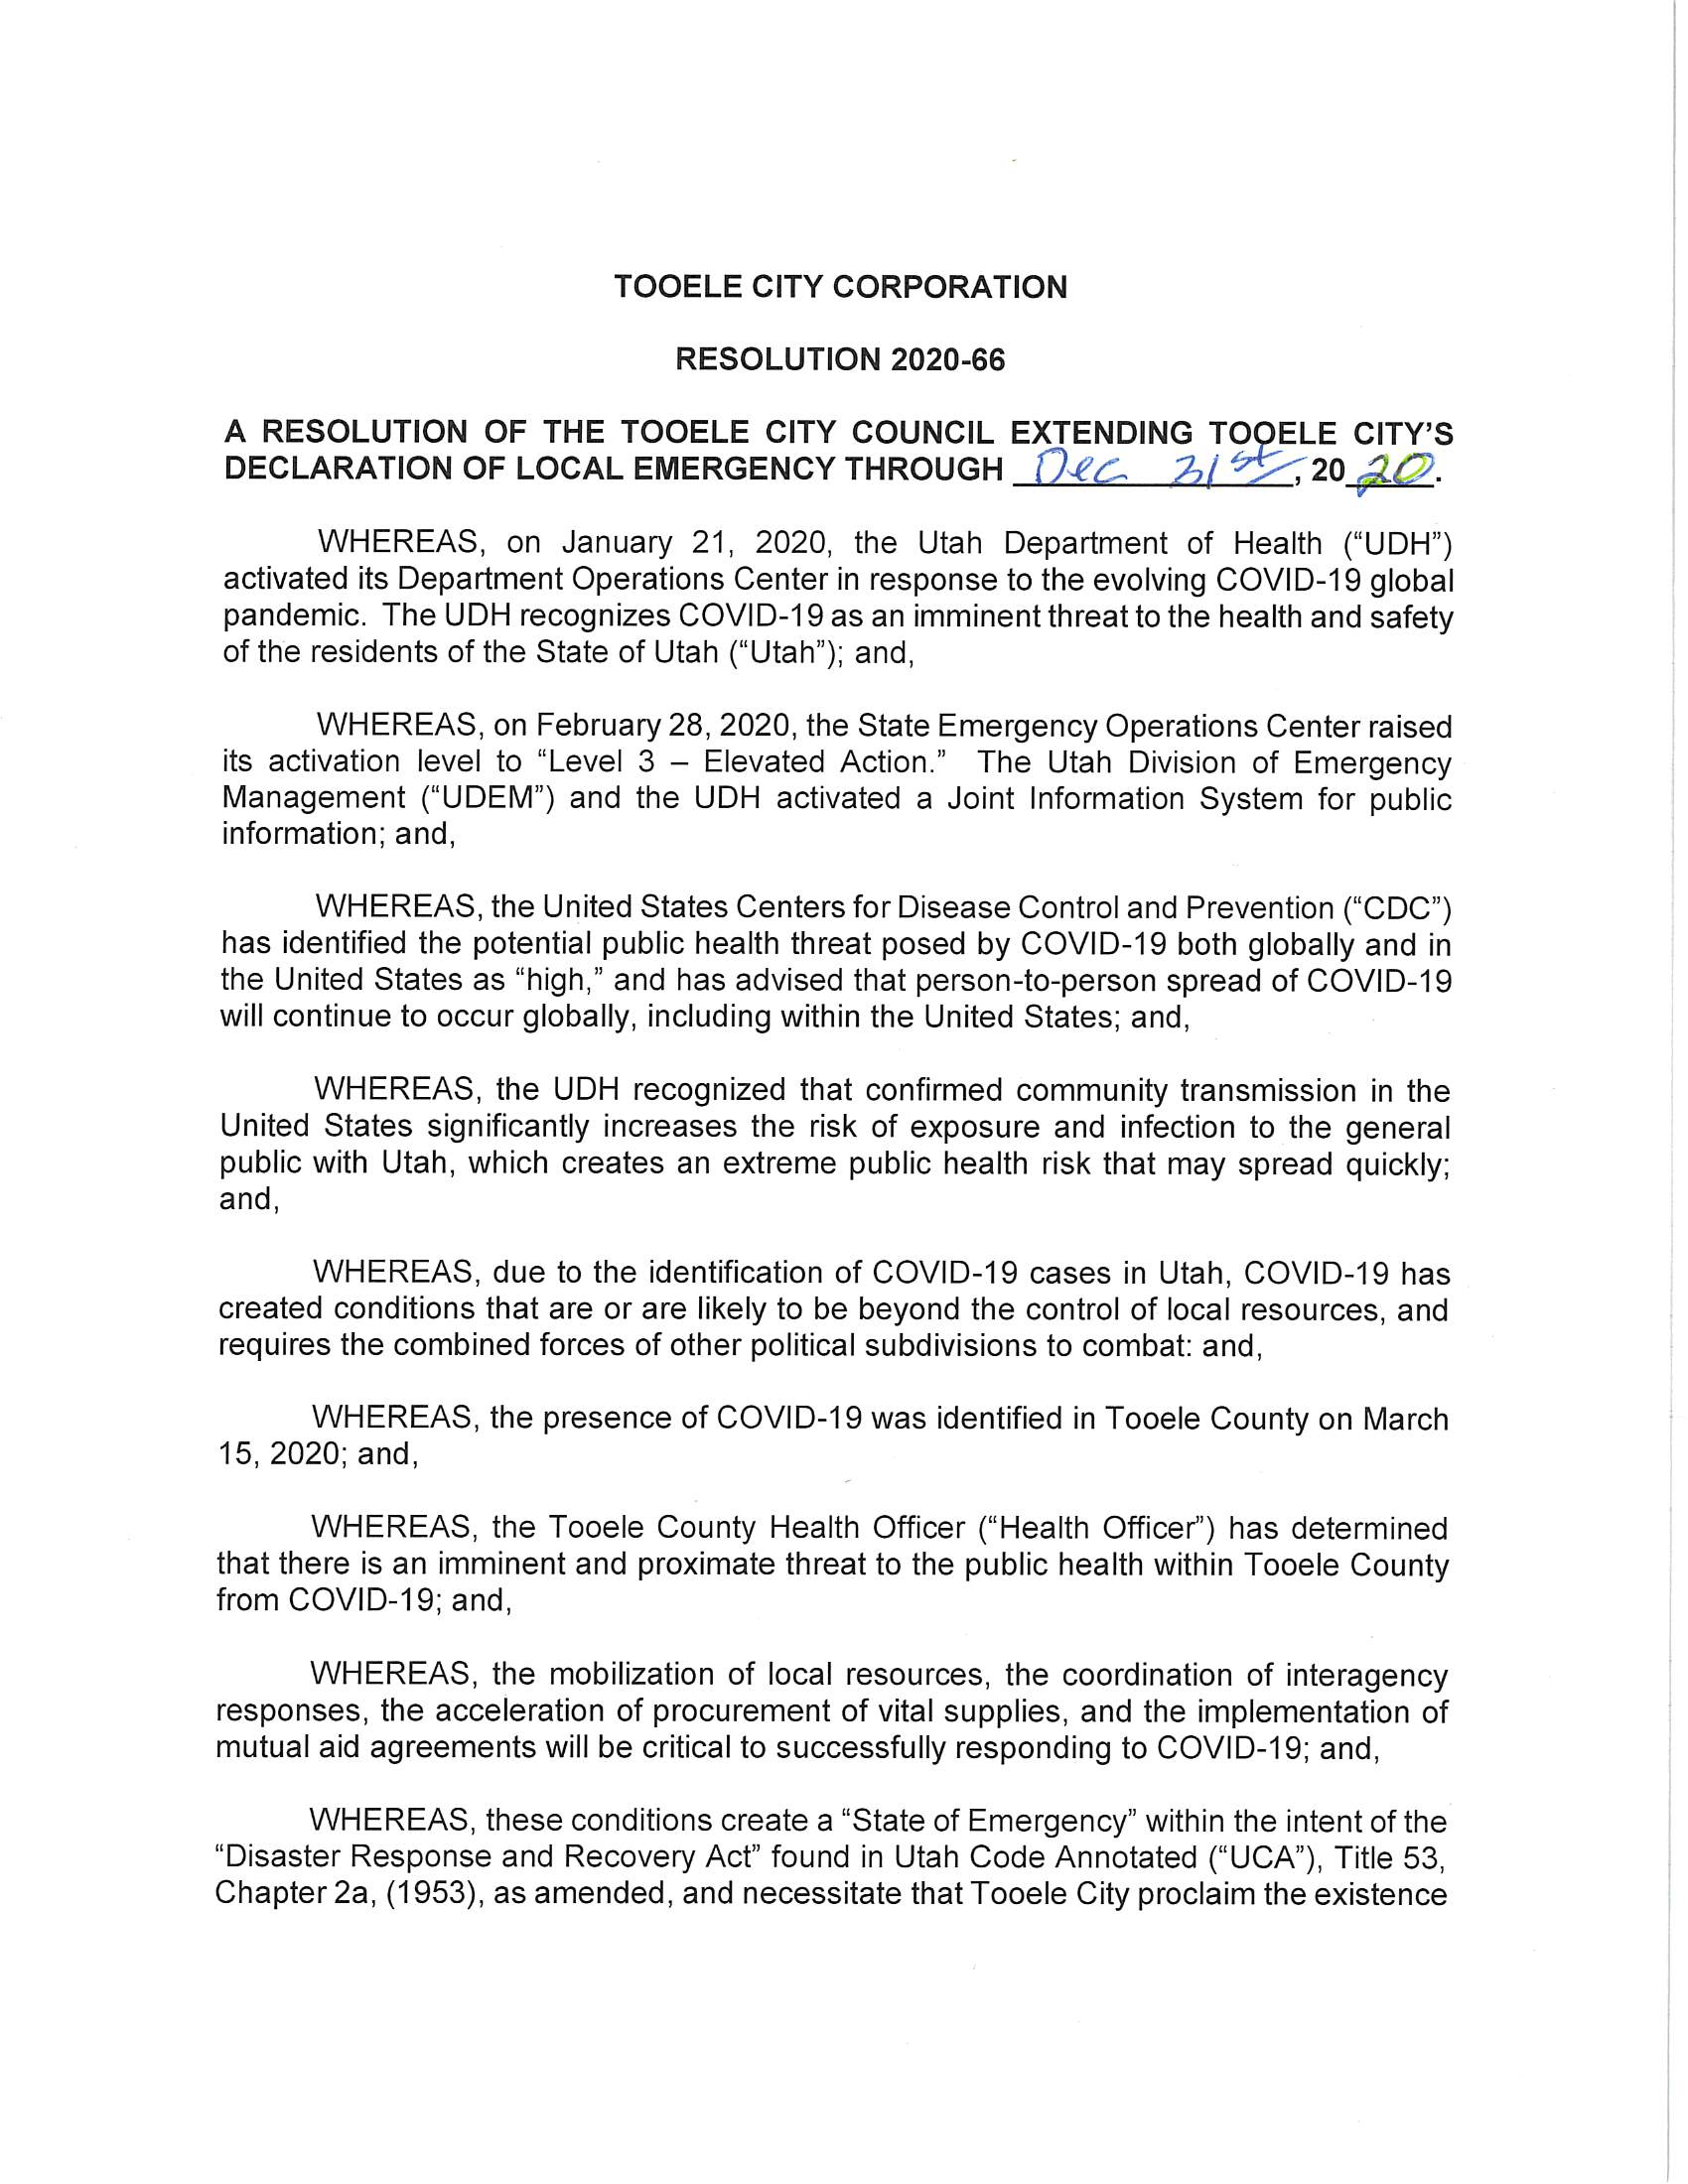 Extension of Emergency Declaration August 5 2020